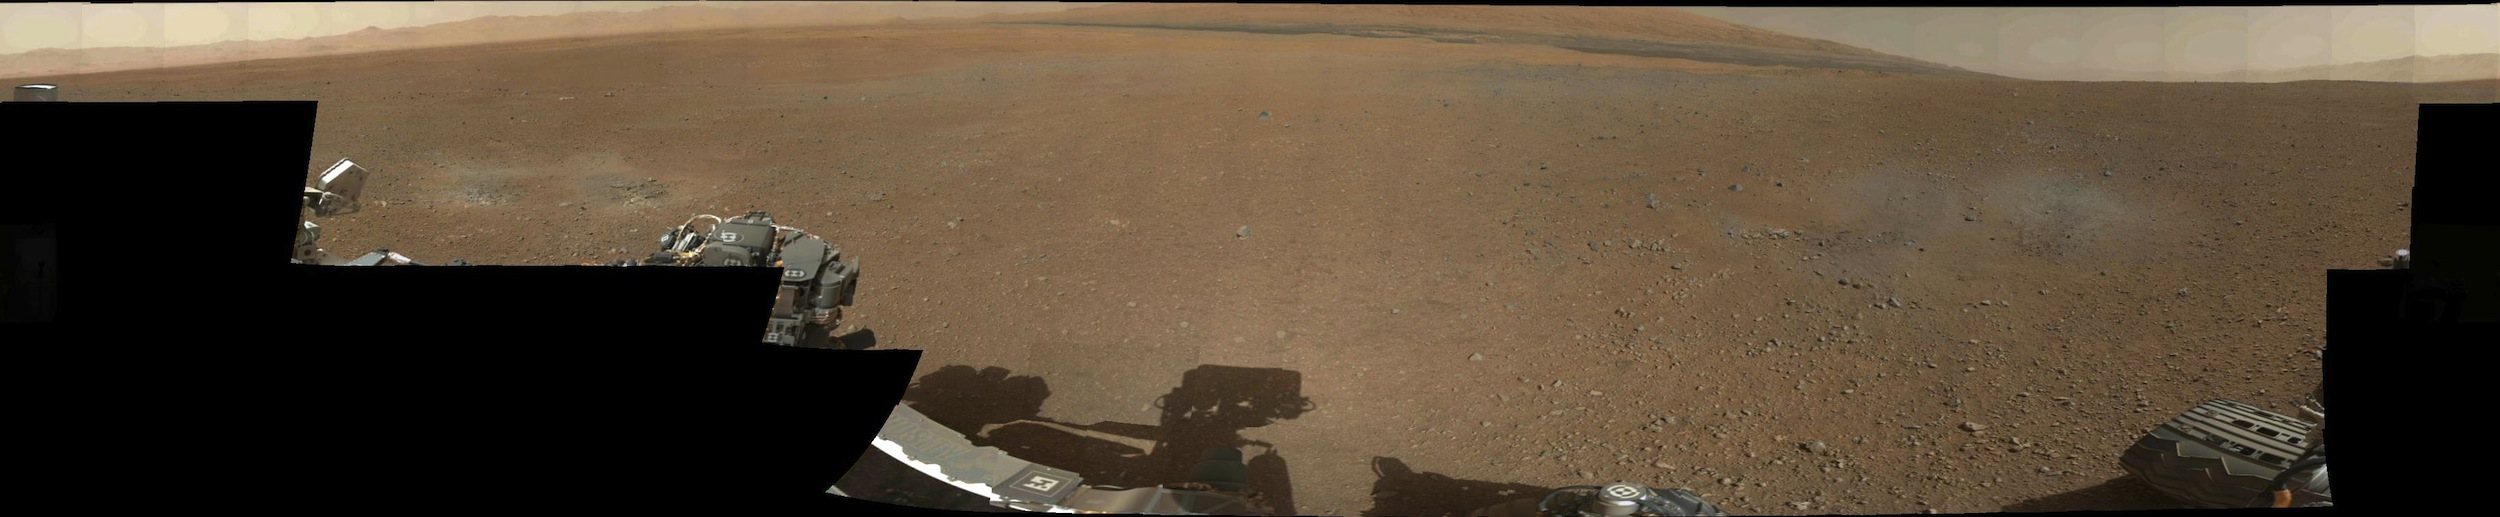 A full sweep by Curiosity's mast camera captures its surroundings.